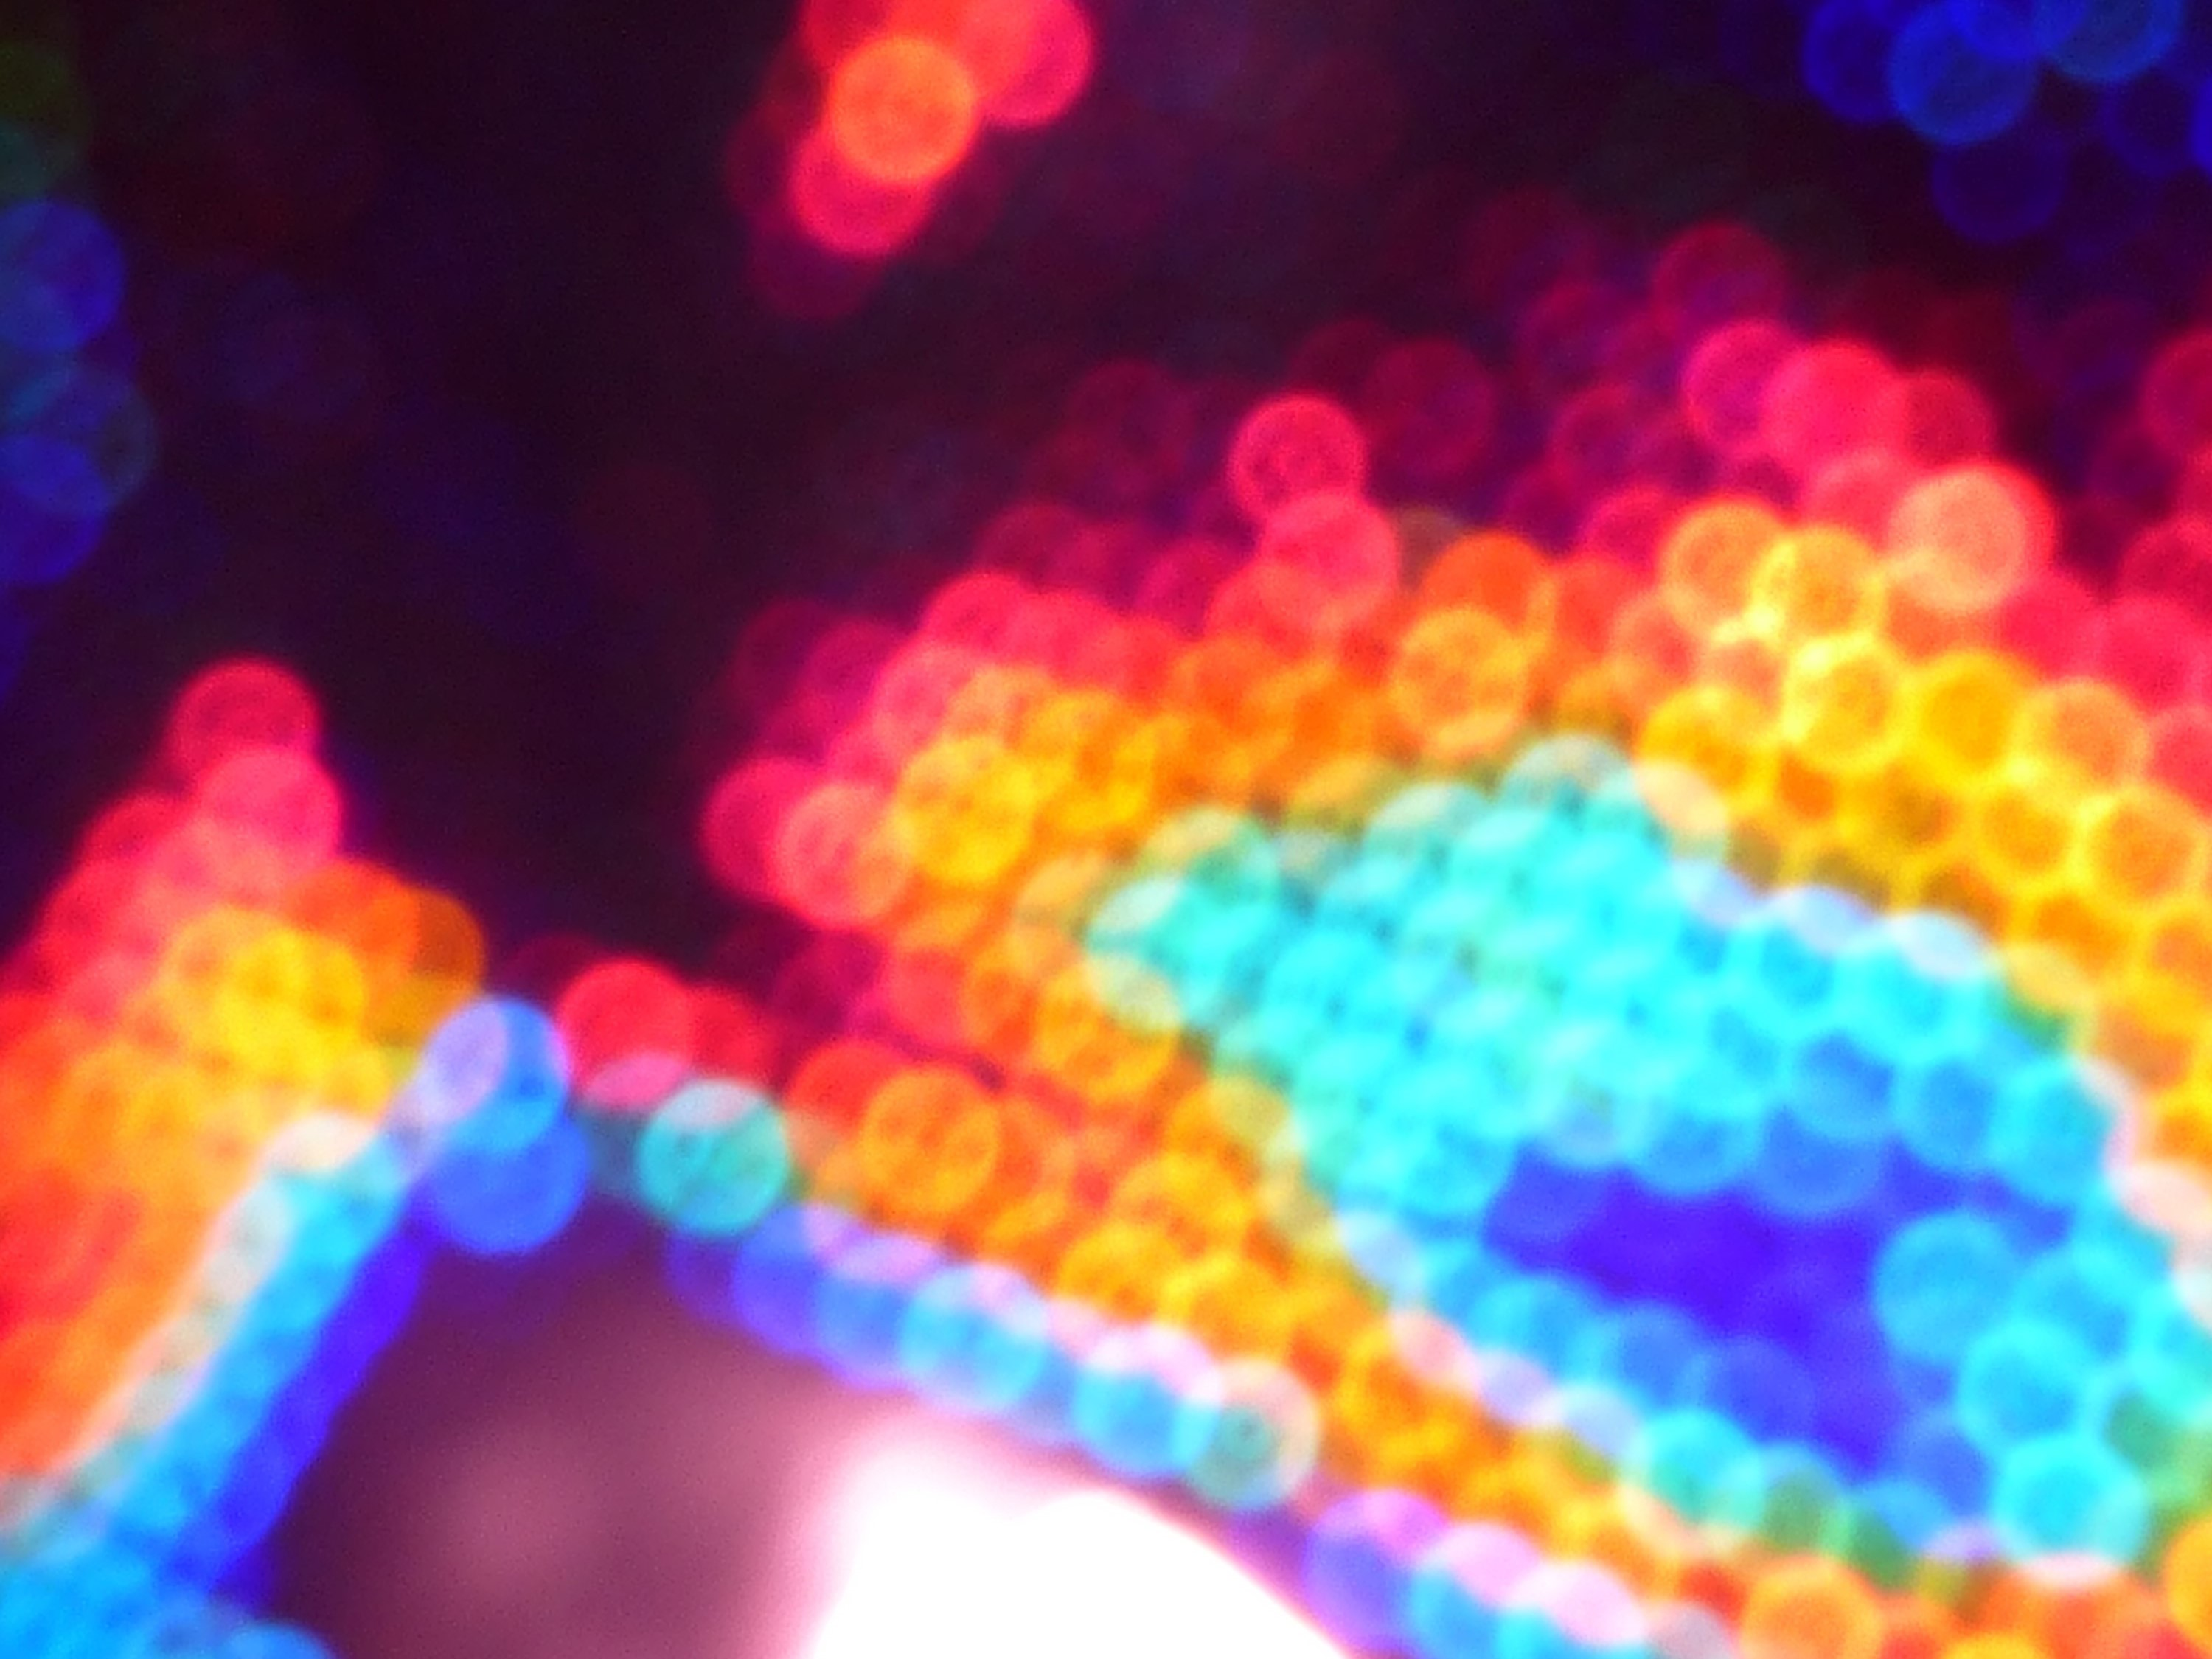 colorful background composed of diffuse overlapping bokeh circles in various bright colours